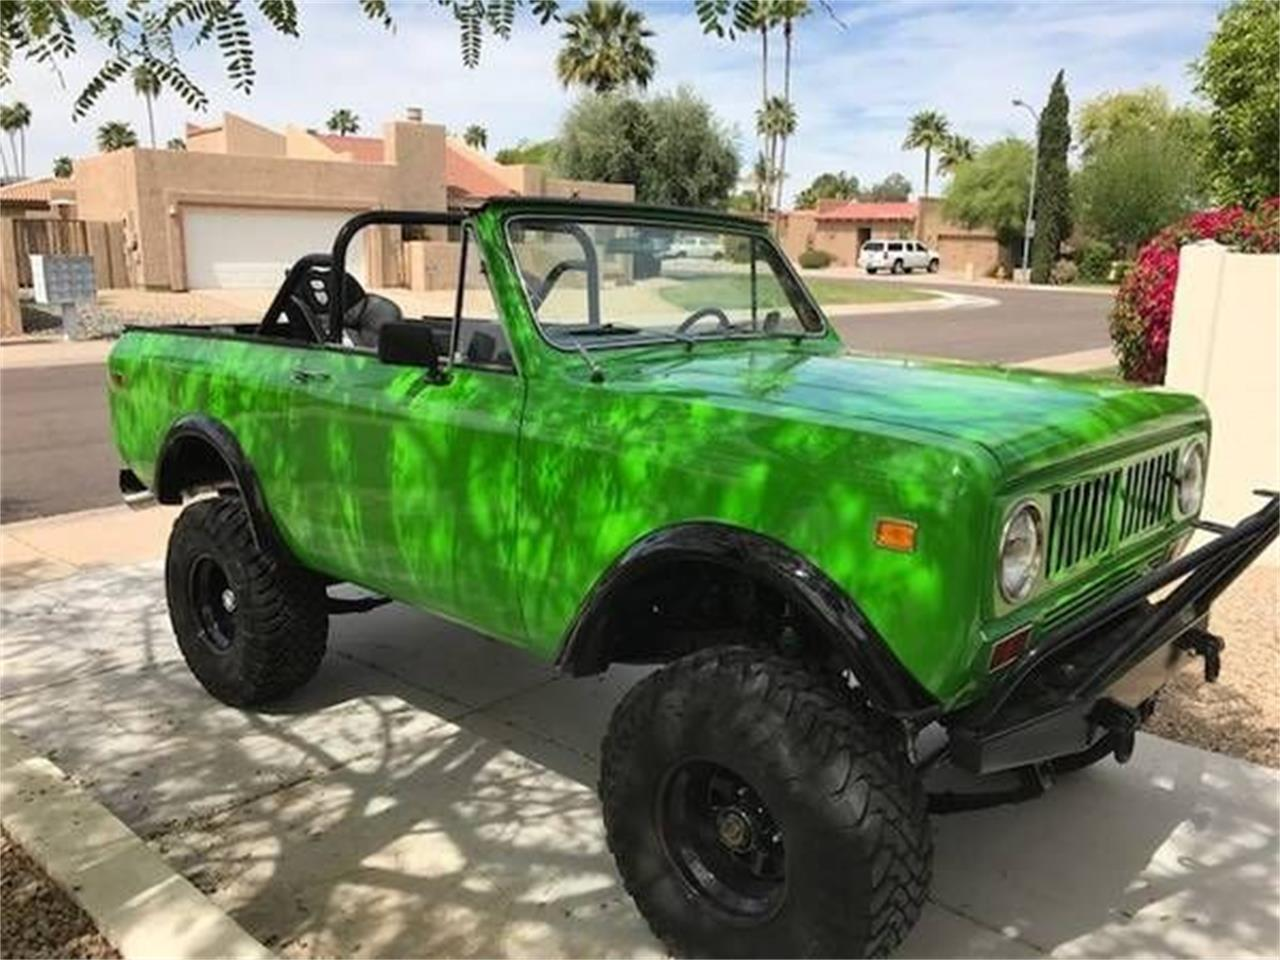 hight resolution of rewiring scout ii wiring diagram used 1974 international harvester scout ii for sale classiccars com rewiring